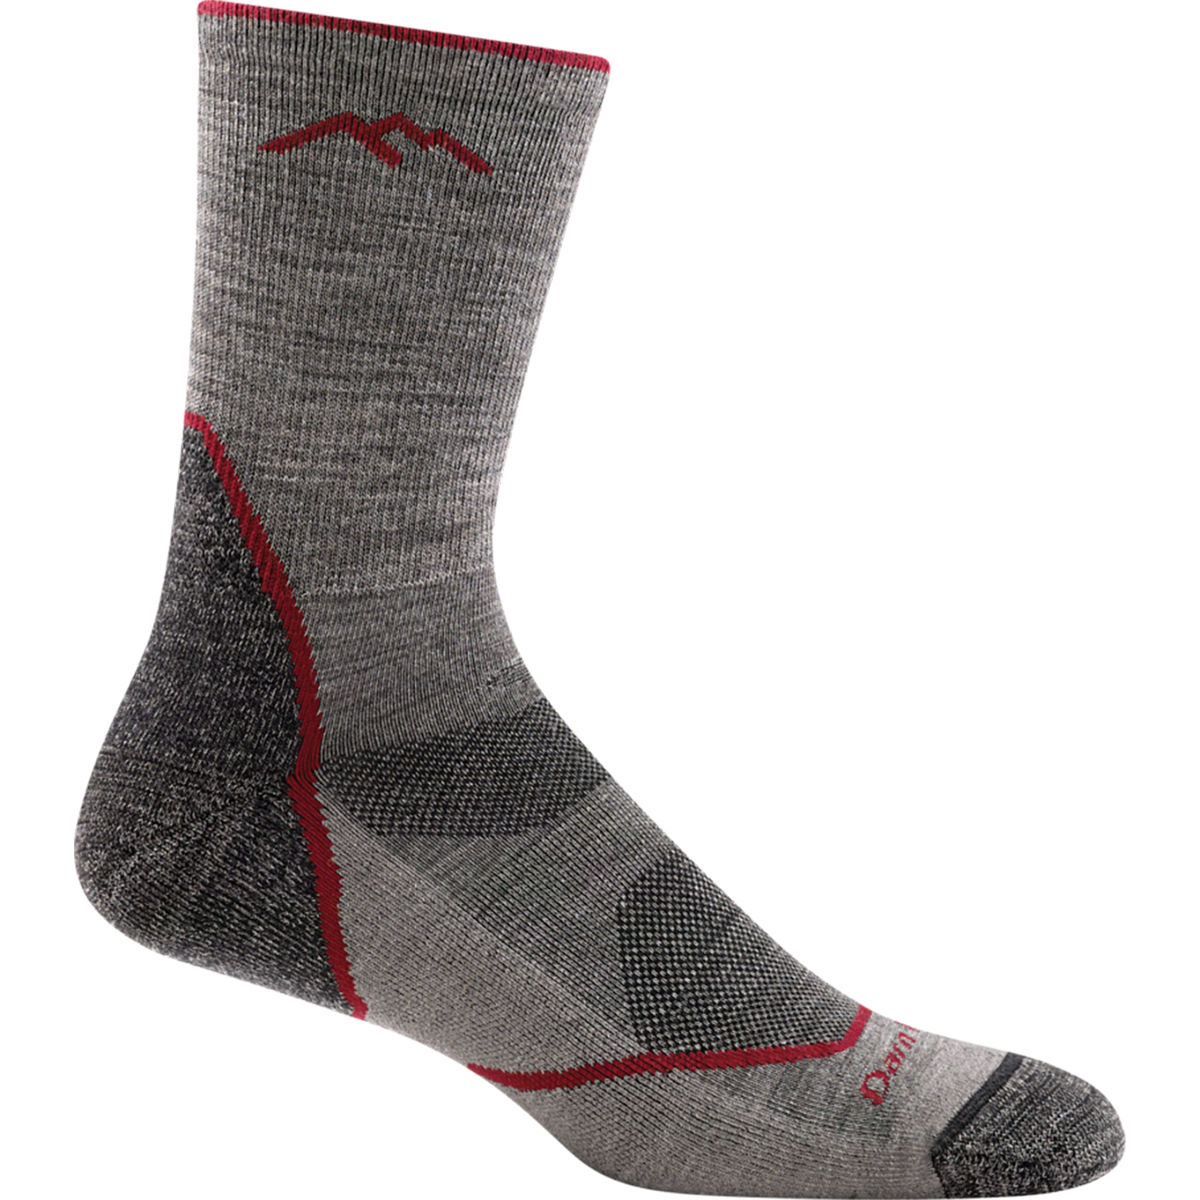 Darn Tough Darn Tough Light Hiker Micro Light Cushion Sock   Socks